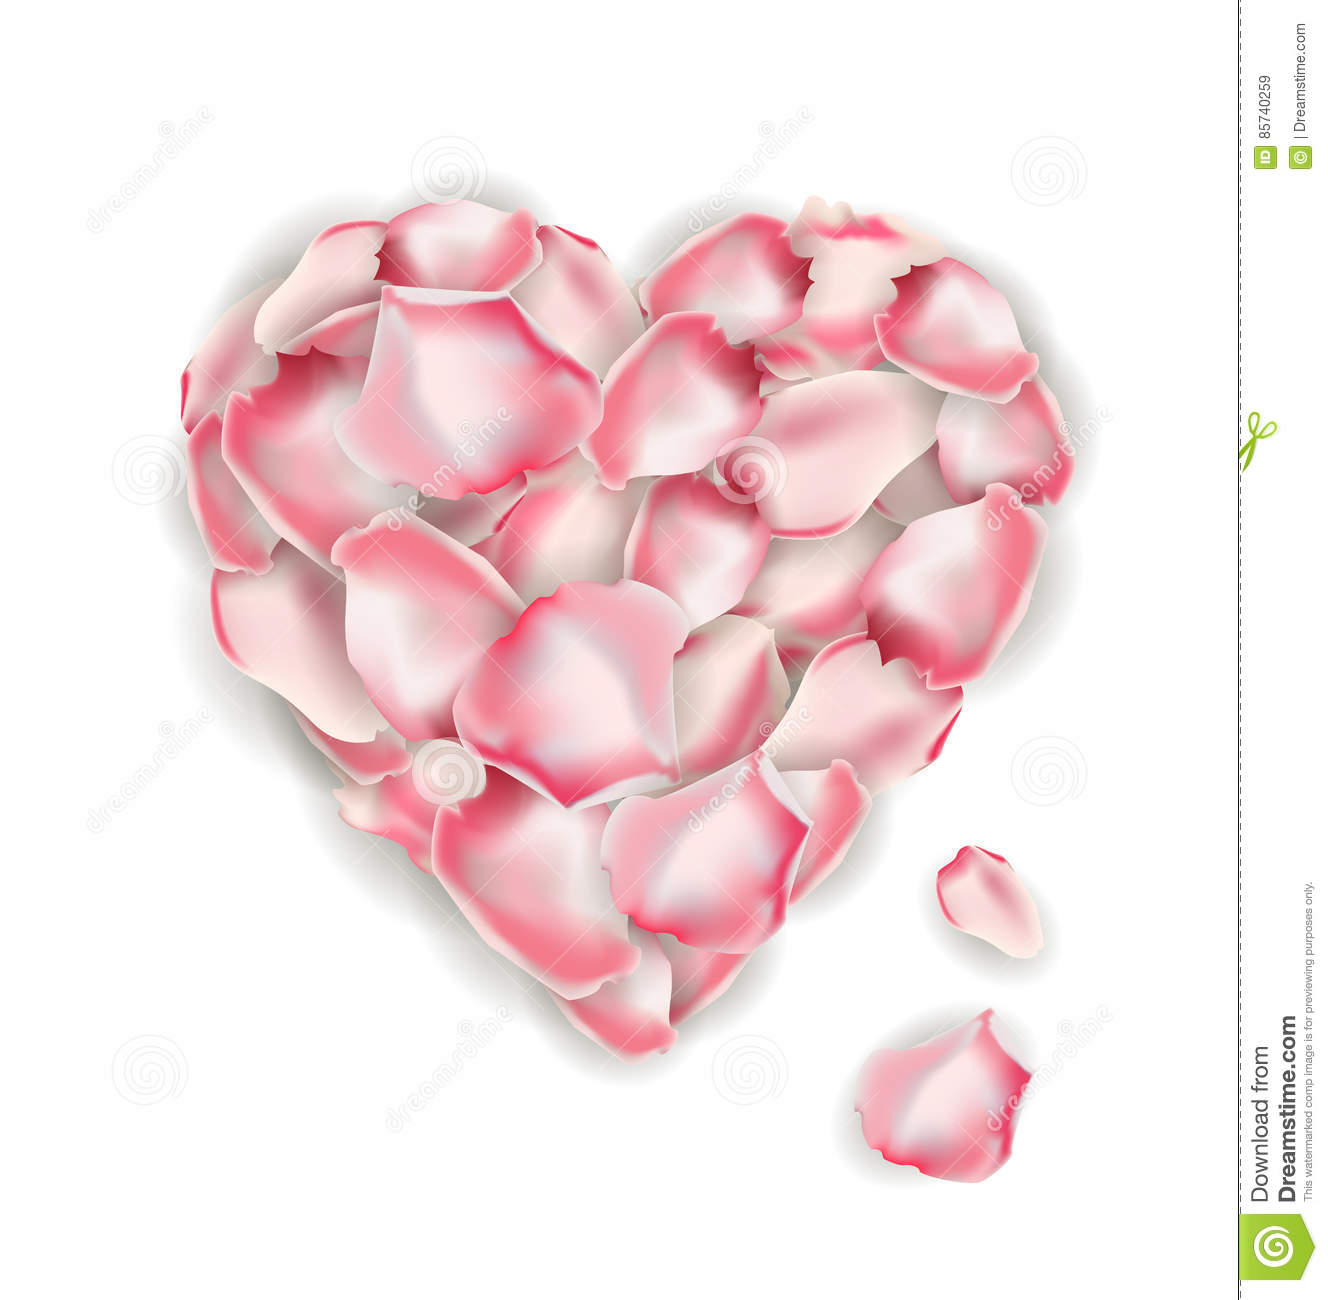 heart shape of pink rose petals isolated on a white background